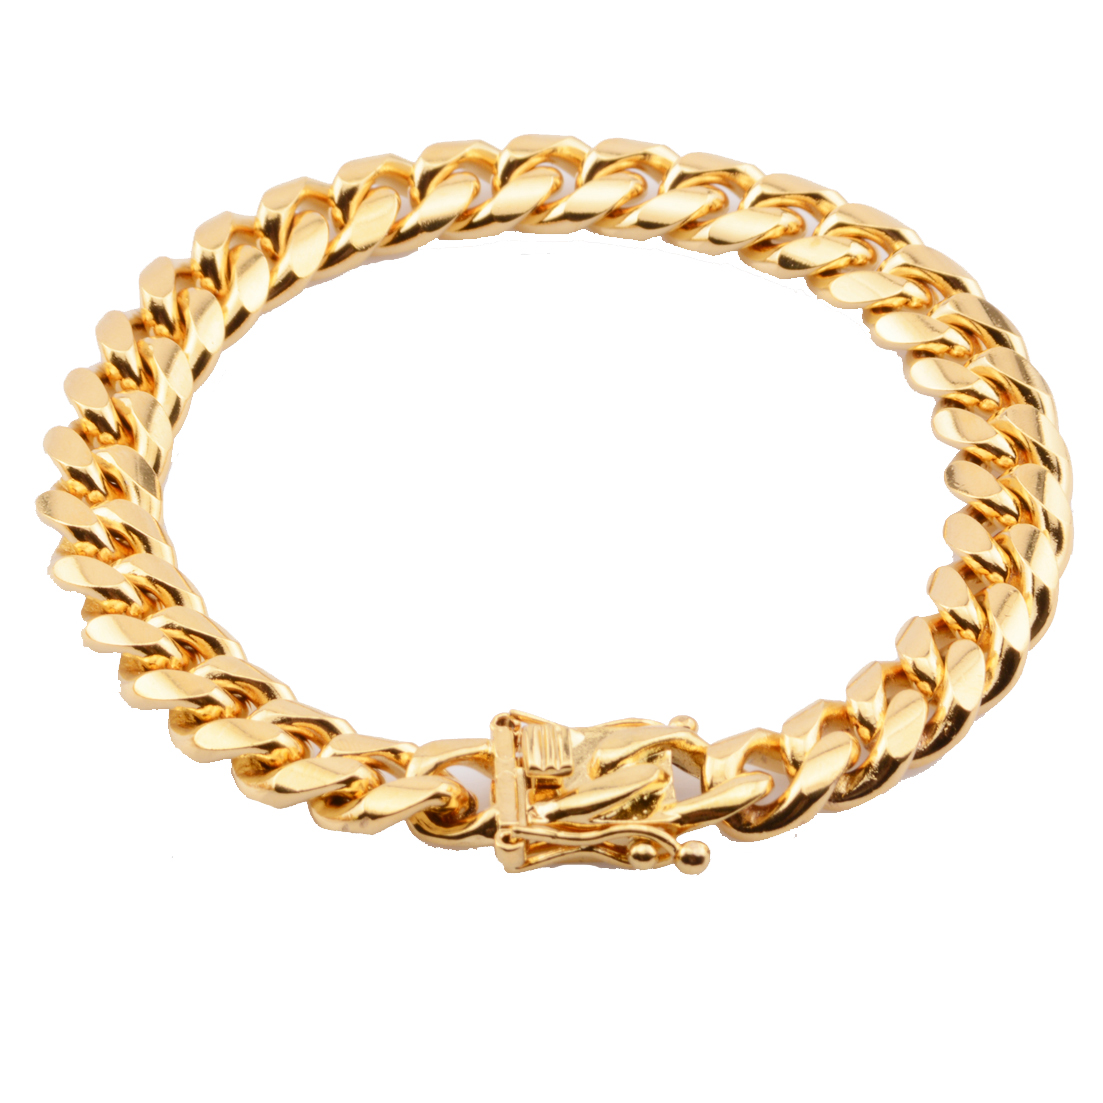 Classic Miami Cuban Curb Link Chain Bracelet Stainless steel Gold Mens Womens Hip Hop 10mm